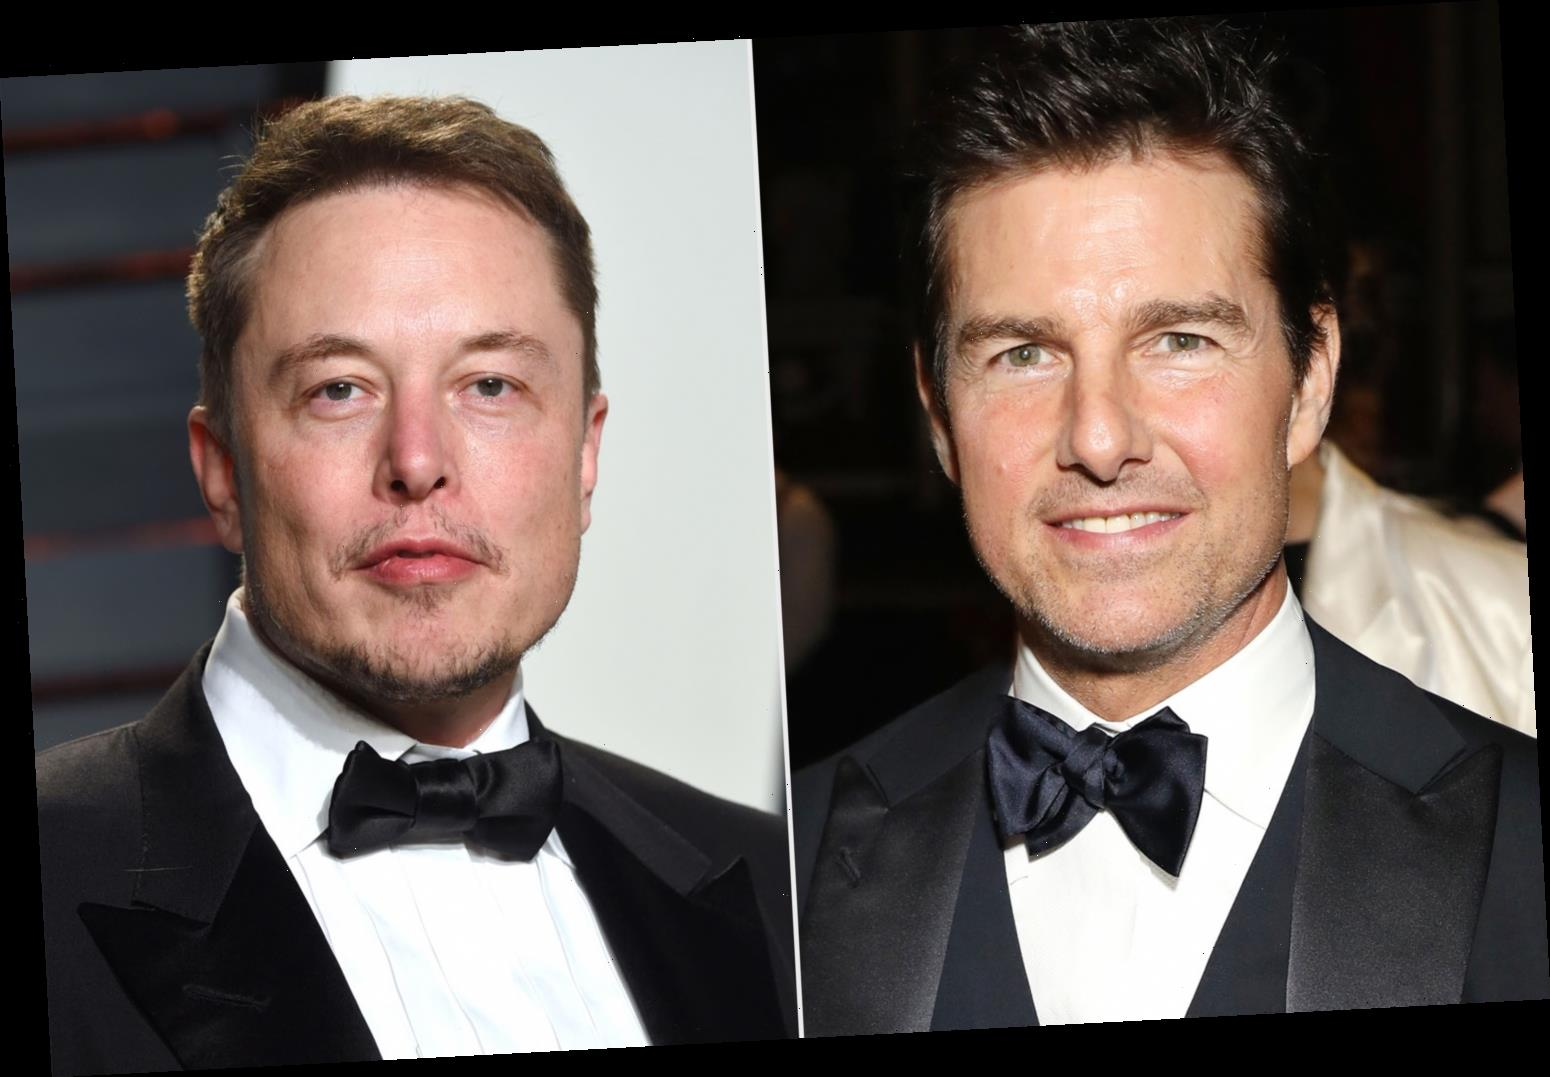 NASA Official Hopes to Bring Tom Cruise to Space to 'Inspire the Next Elon Musk'